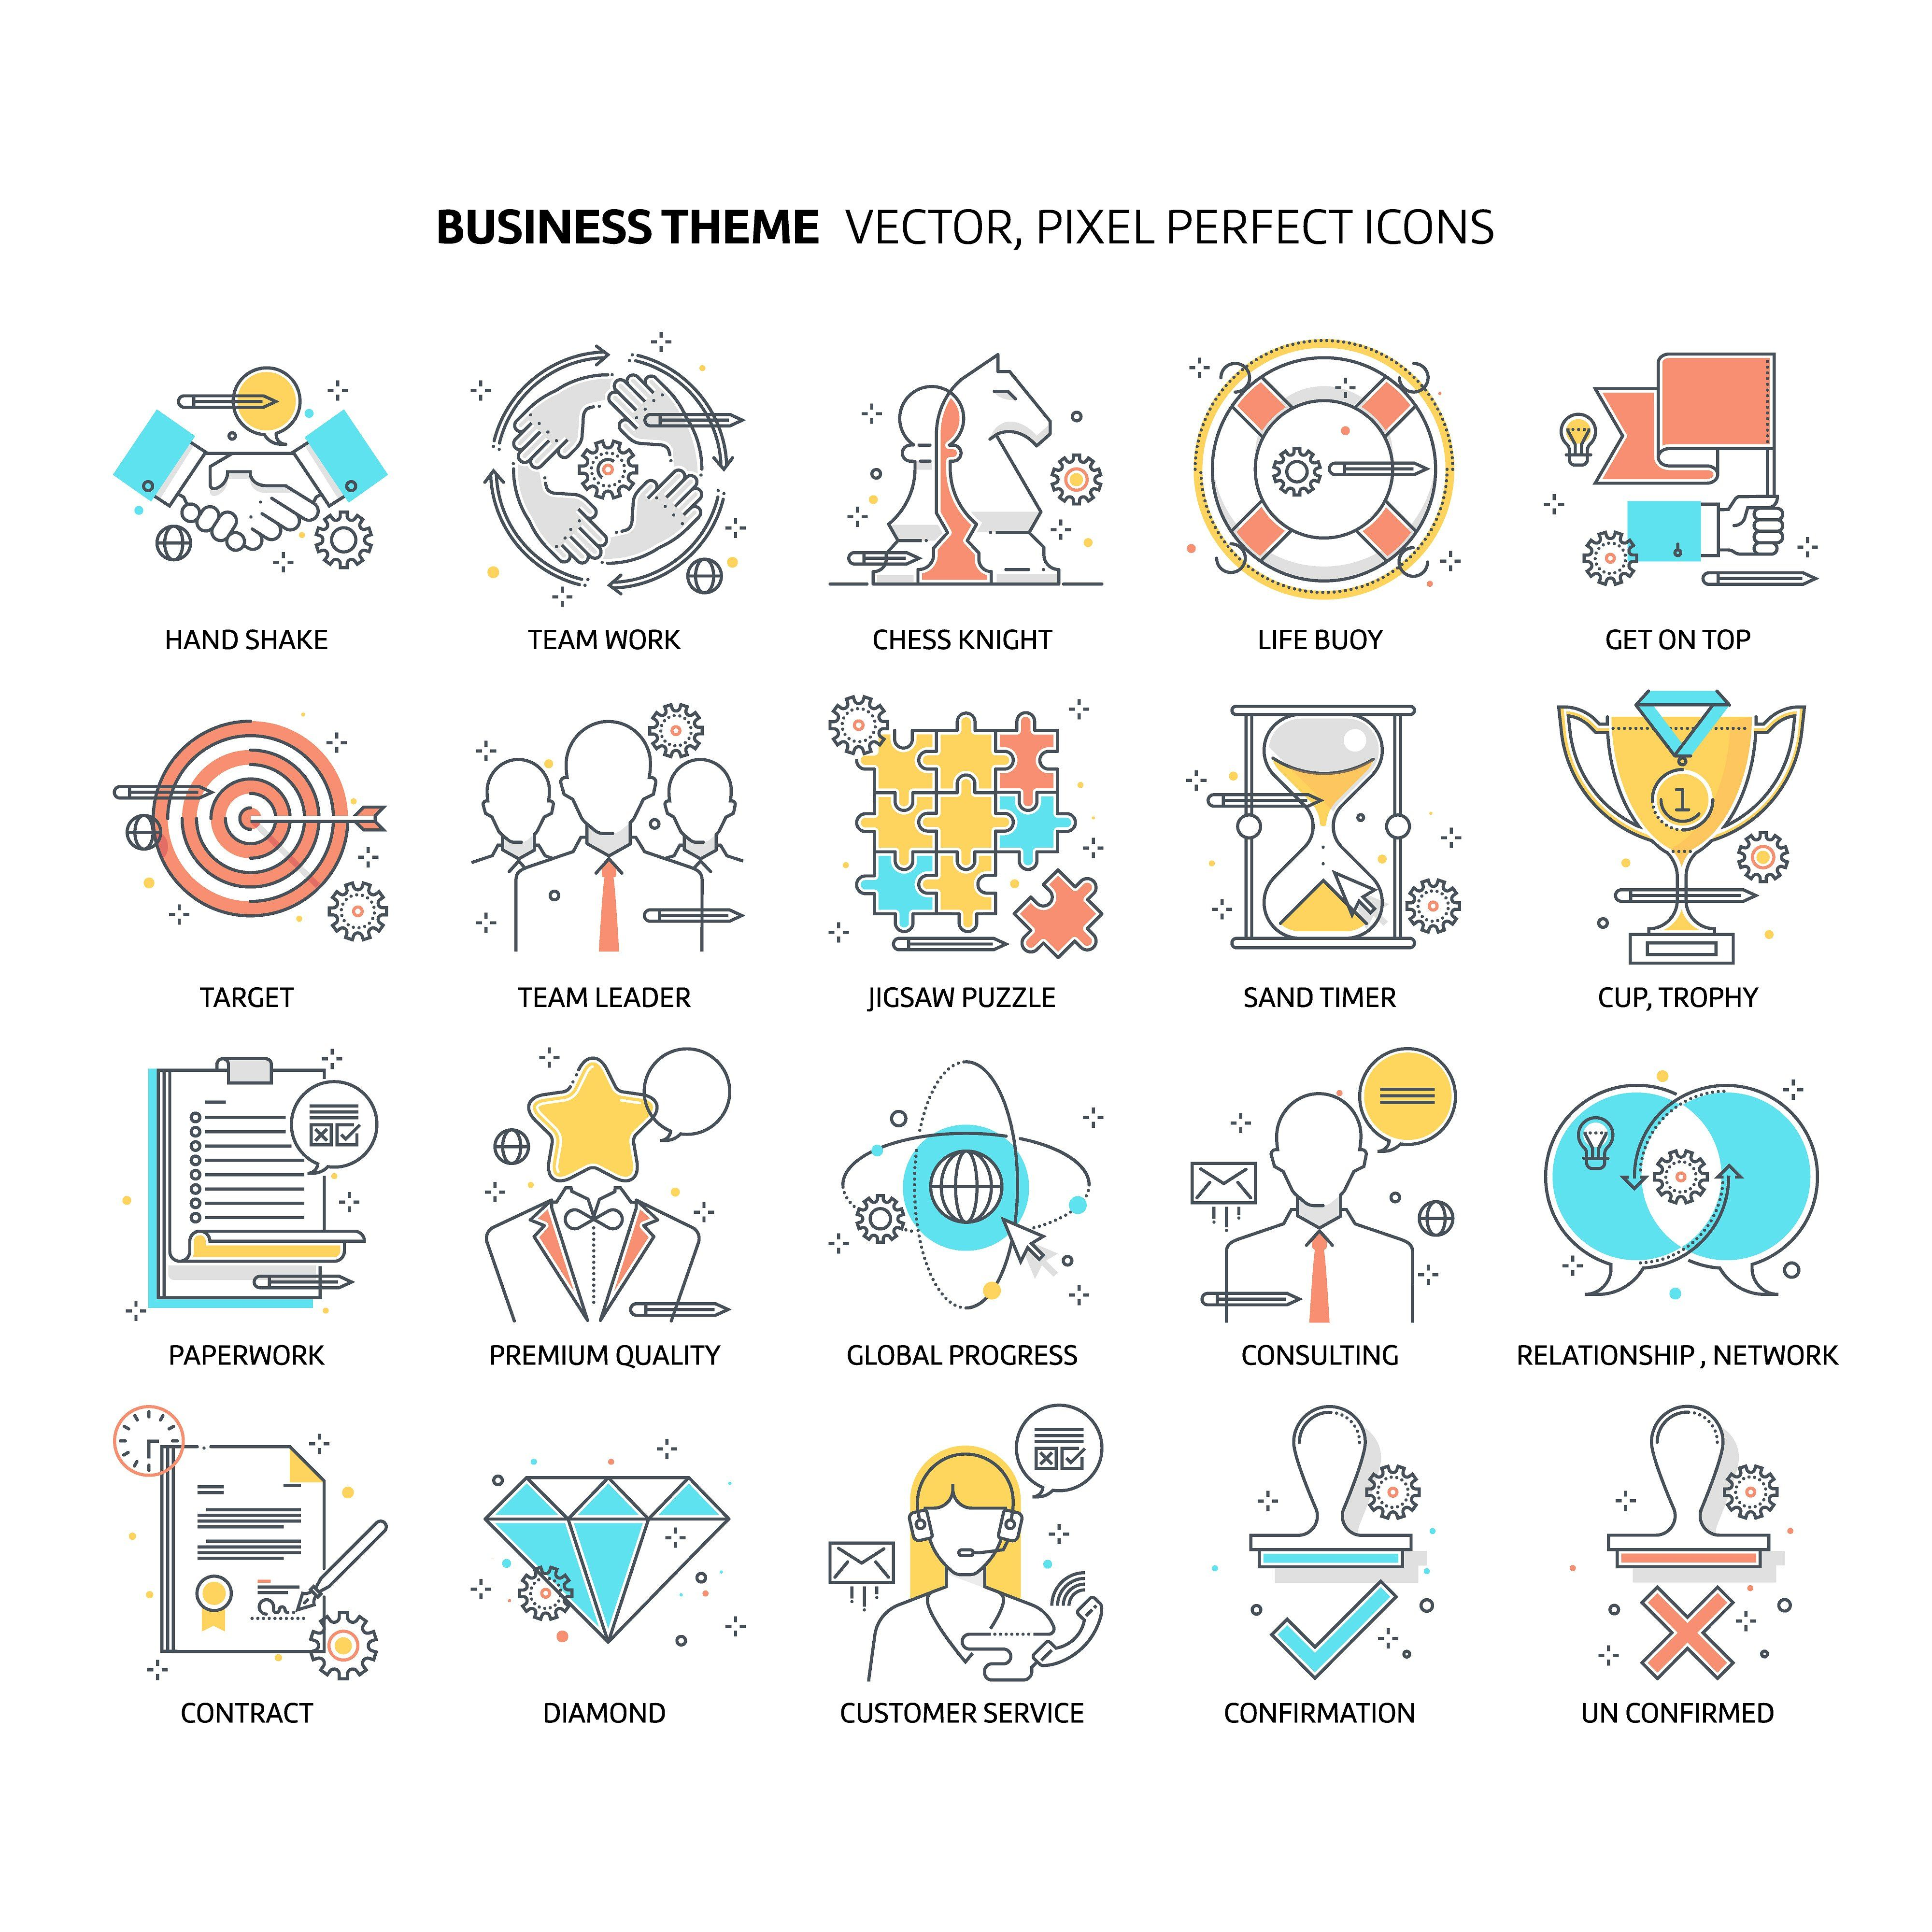 Color line icons icon, flaticon, icons, icon pack, icon